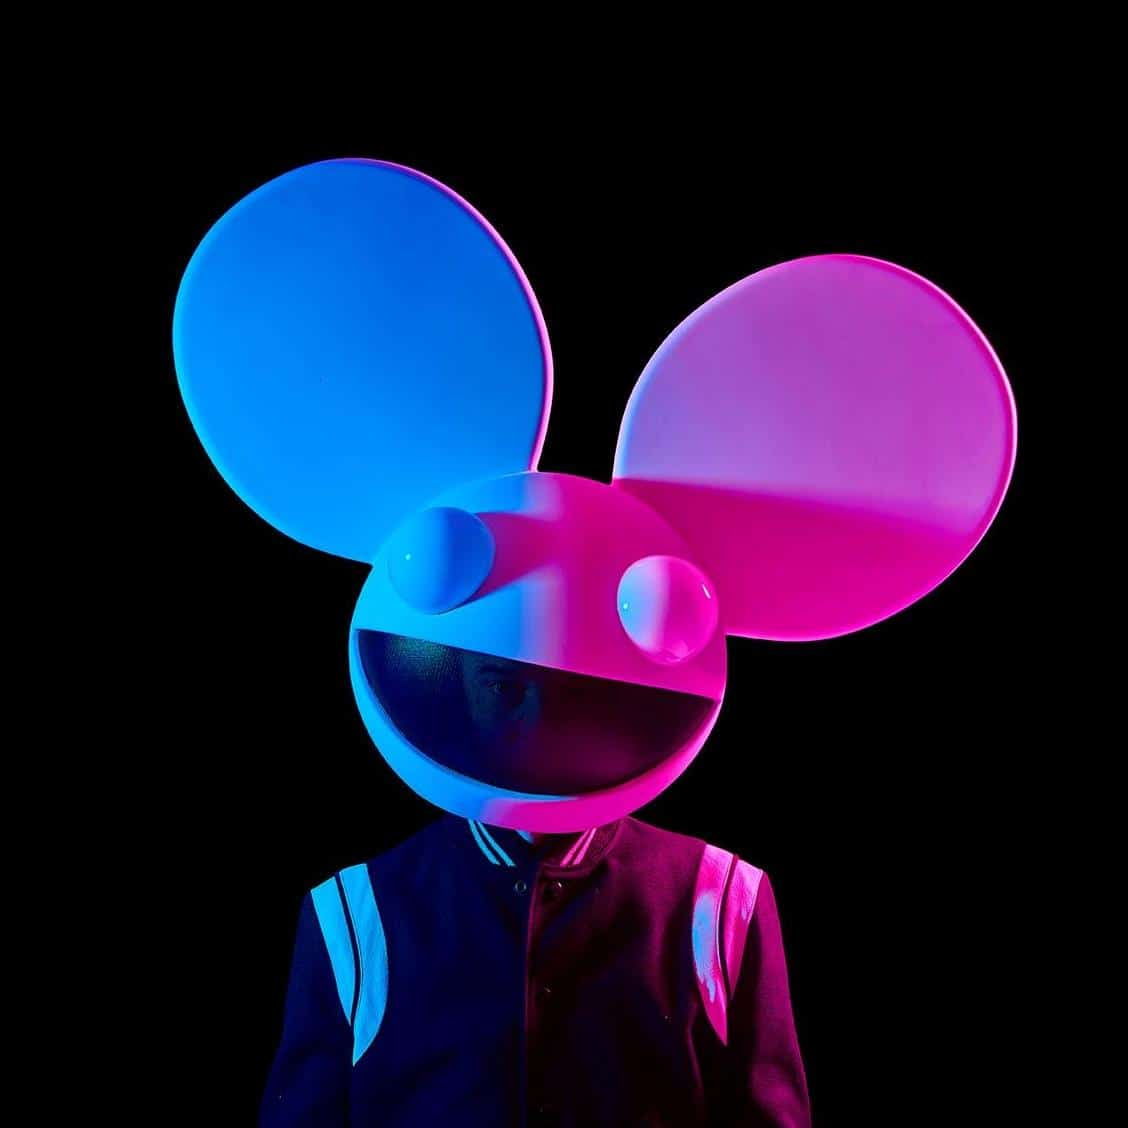 deadmau5 joins HD streaming platform StreamVoodoo